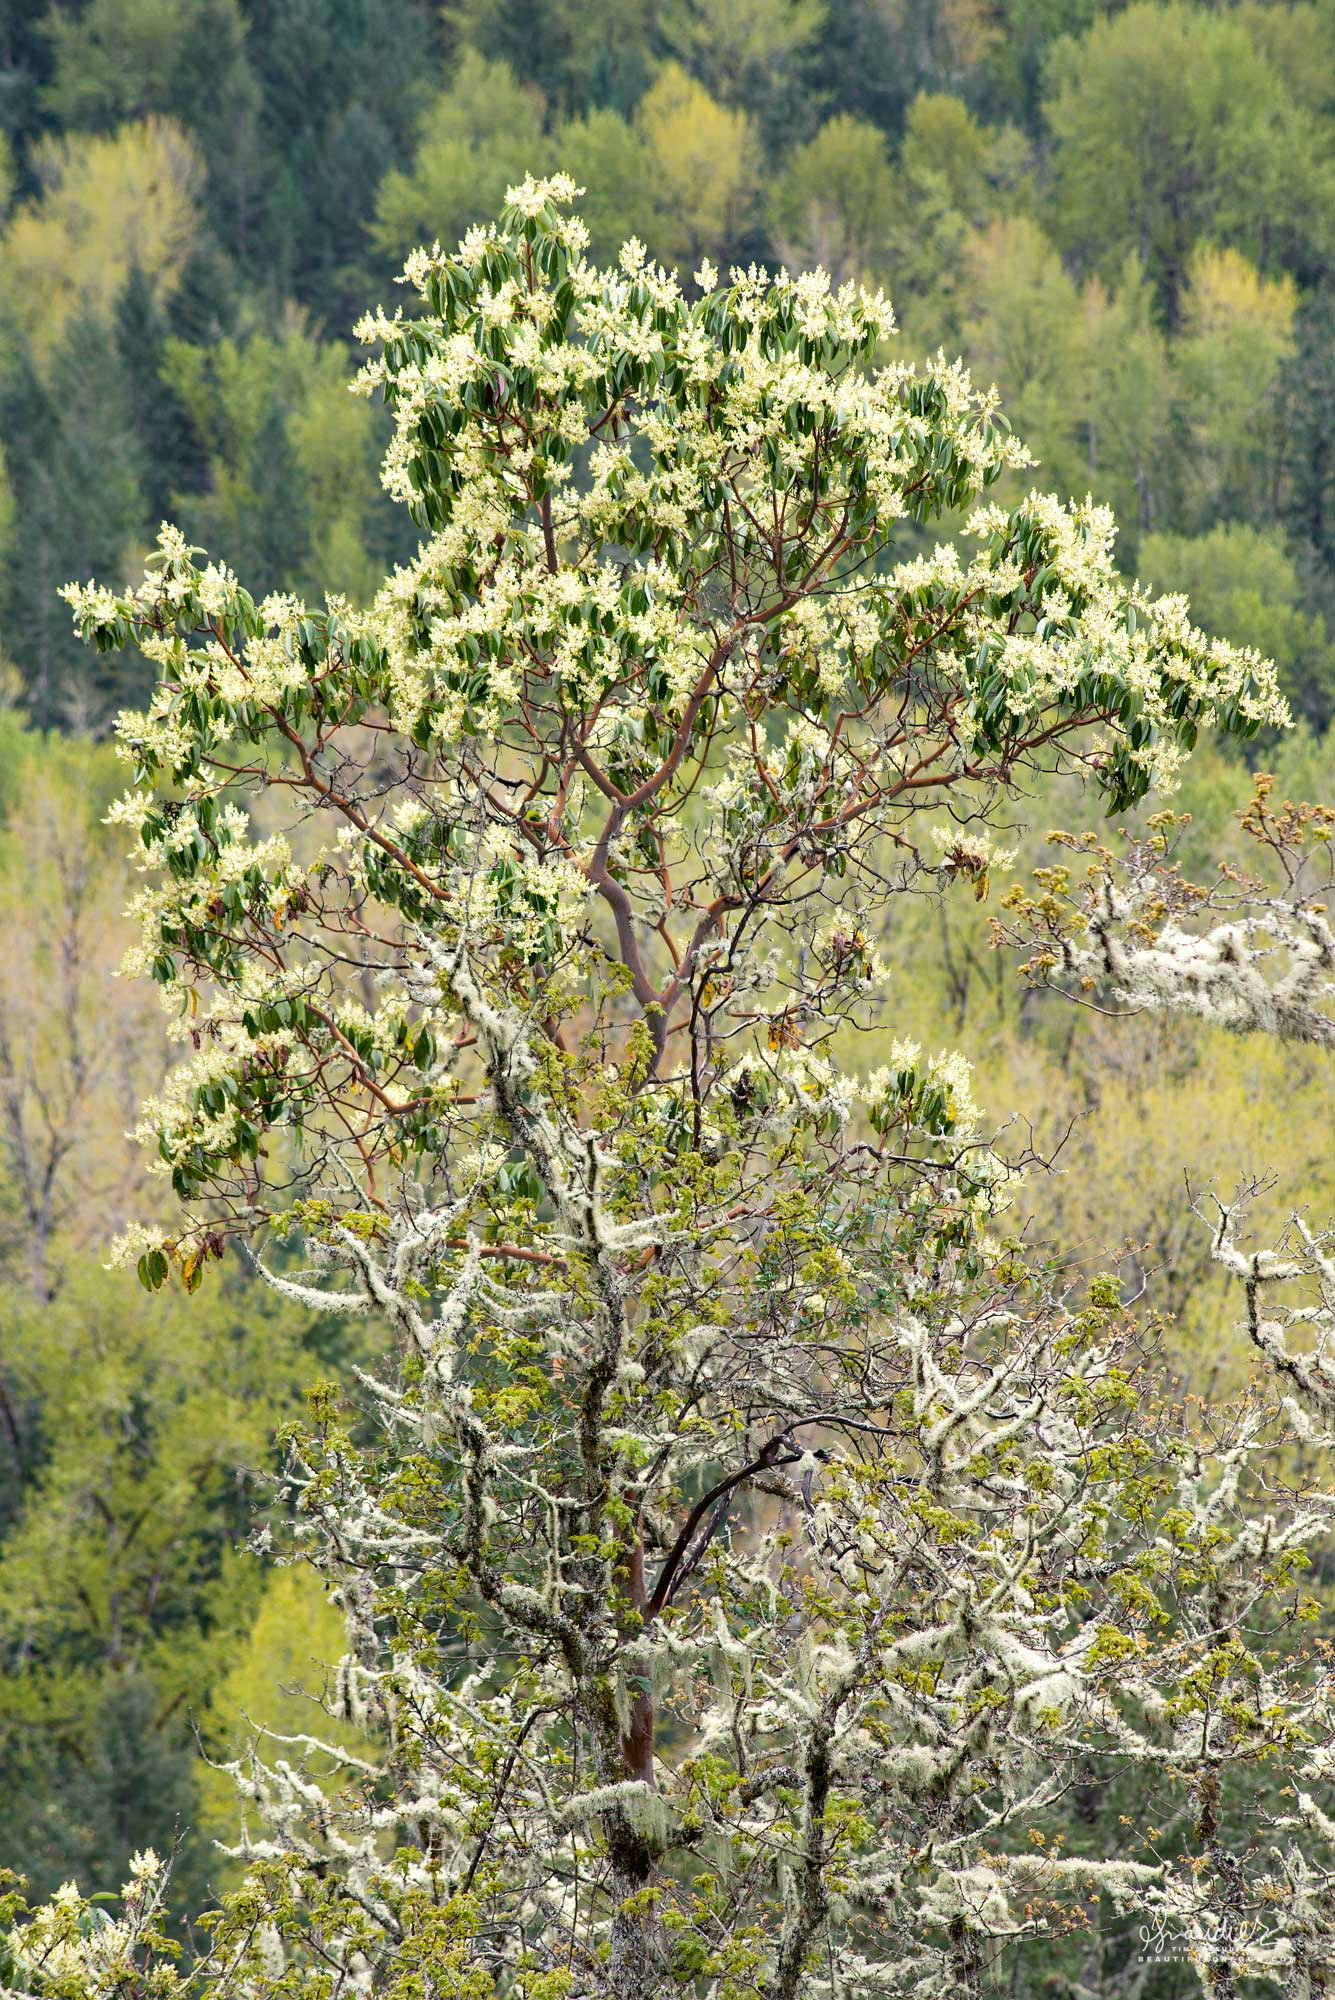 On a sunny south slope overlooking the Middle Fork Willamette River, a Pacific Madrone (Arbutus menziesii) is in full spring bloom. Willamette National Forest, Oregon West Cascades.